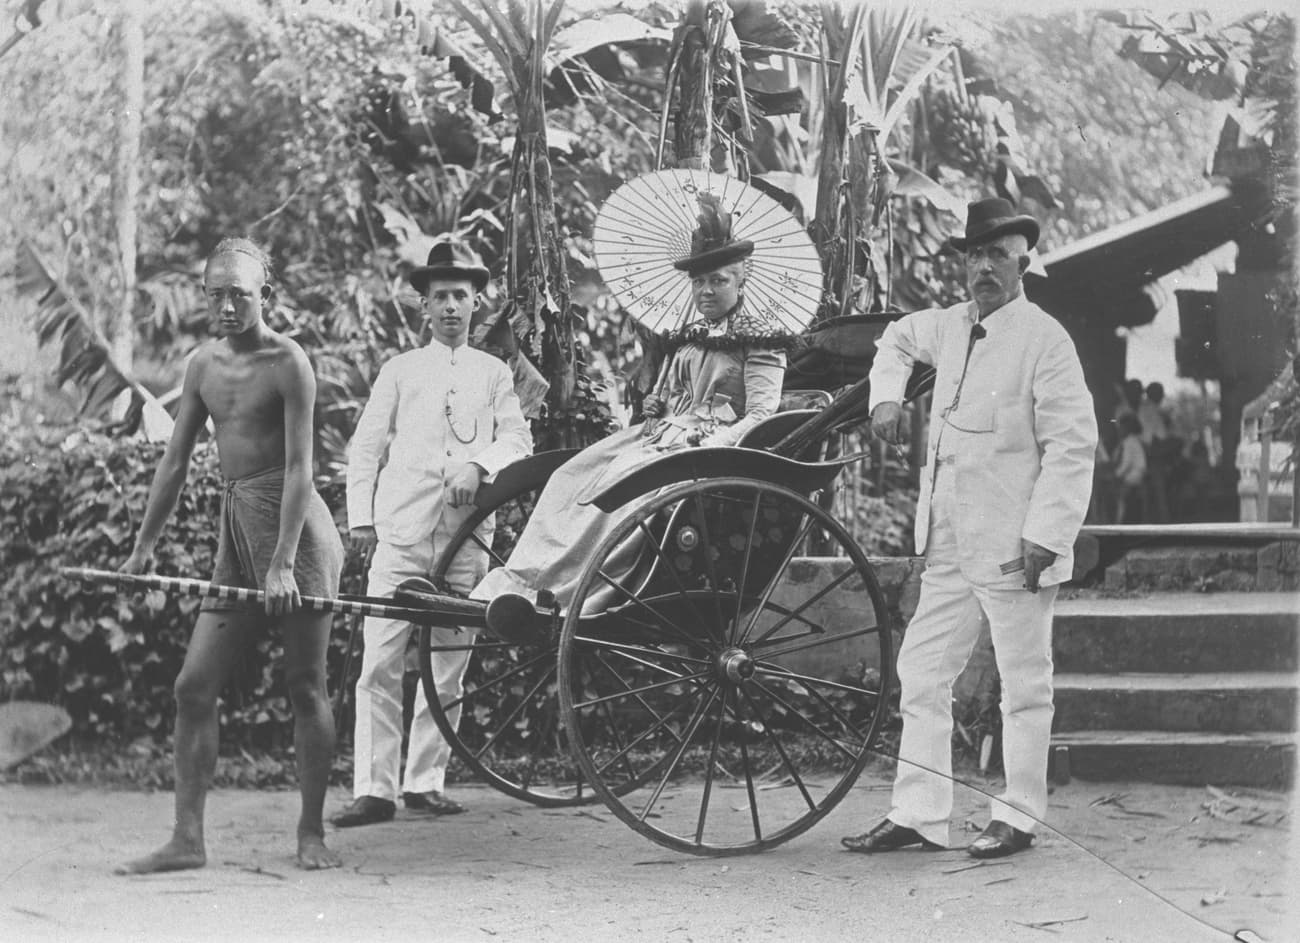 A rickshaw puller and his passengers, 1900s